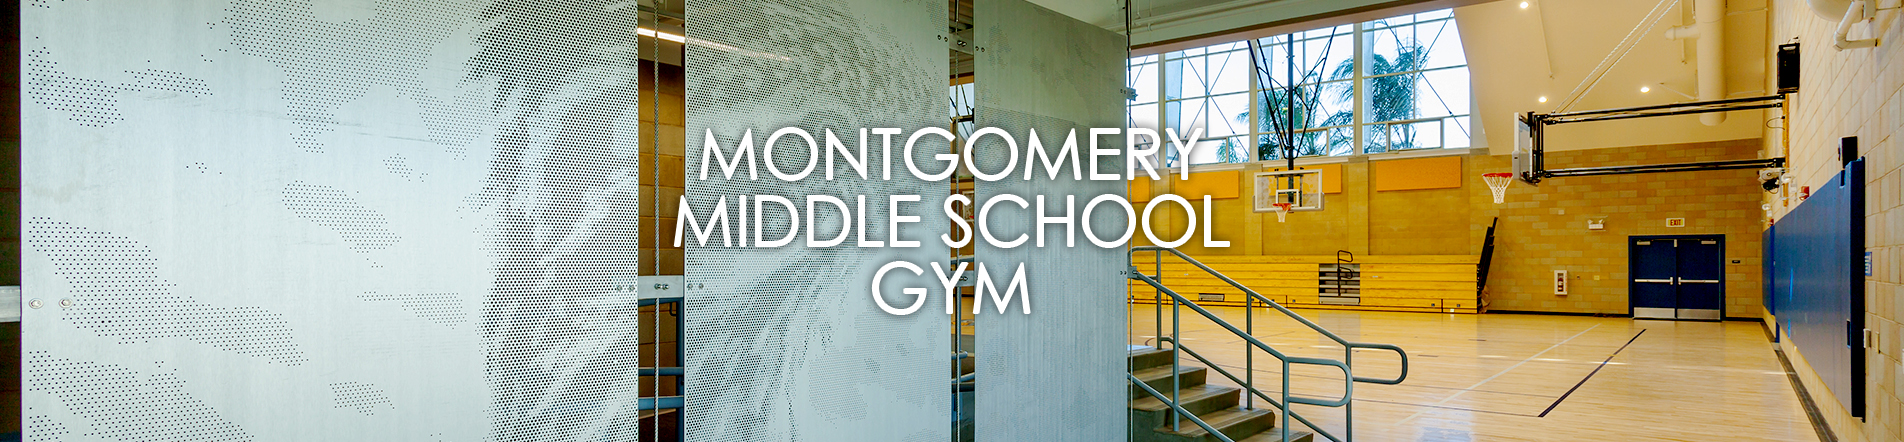 Montgomery Middle School